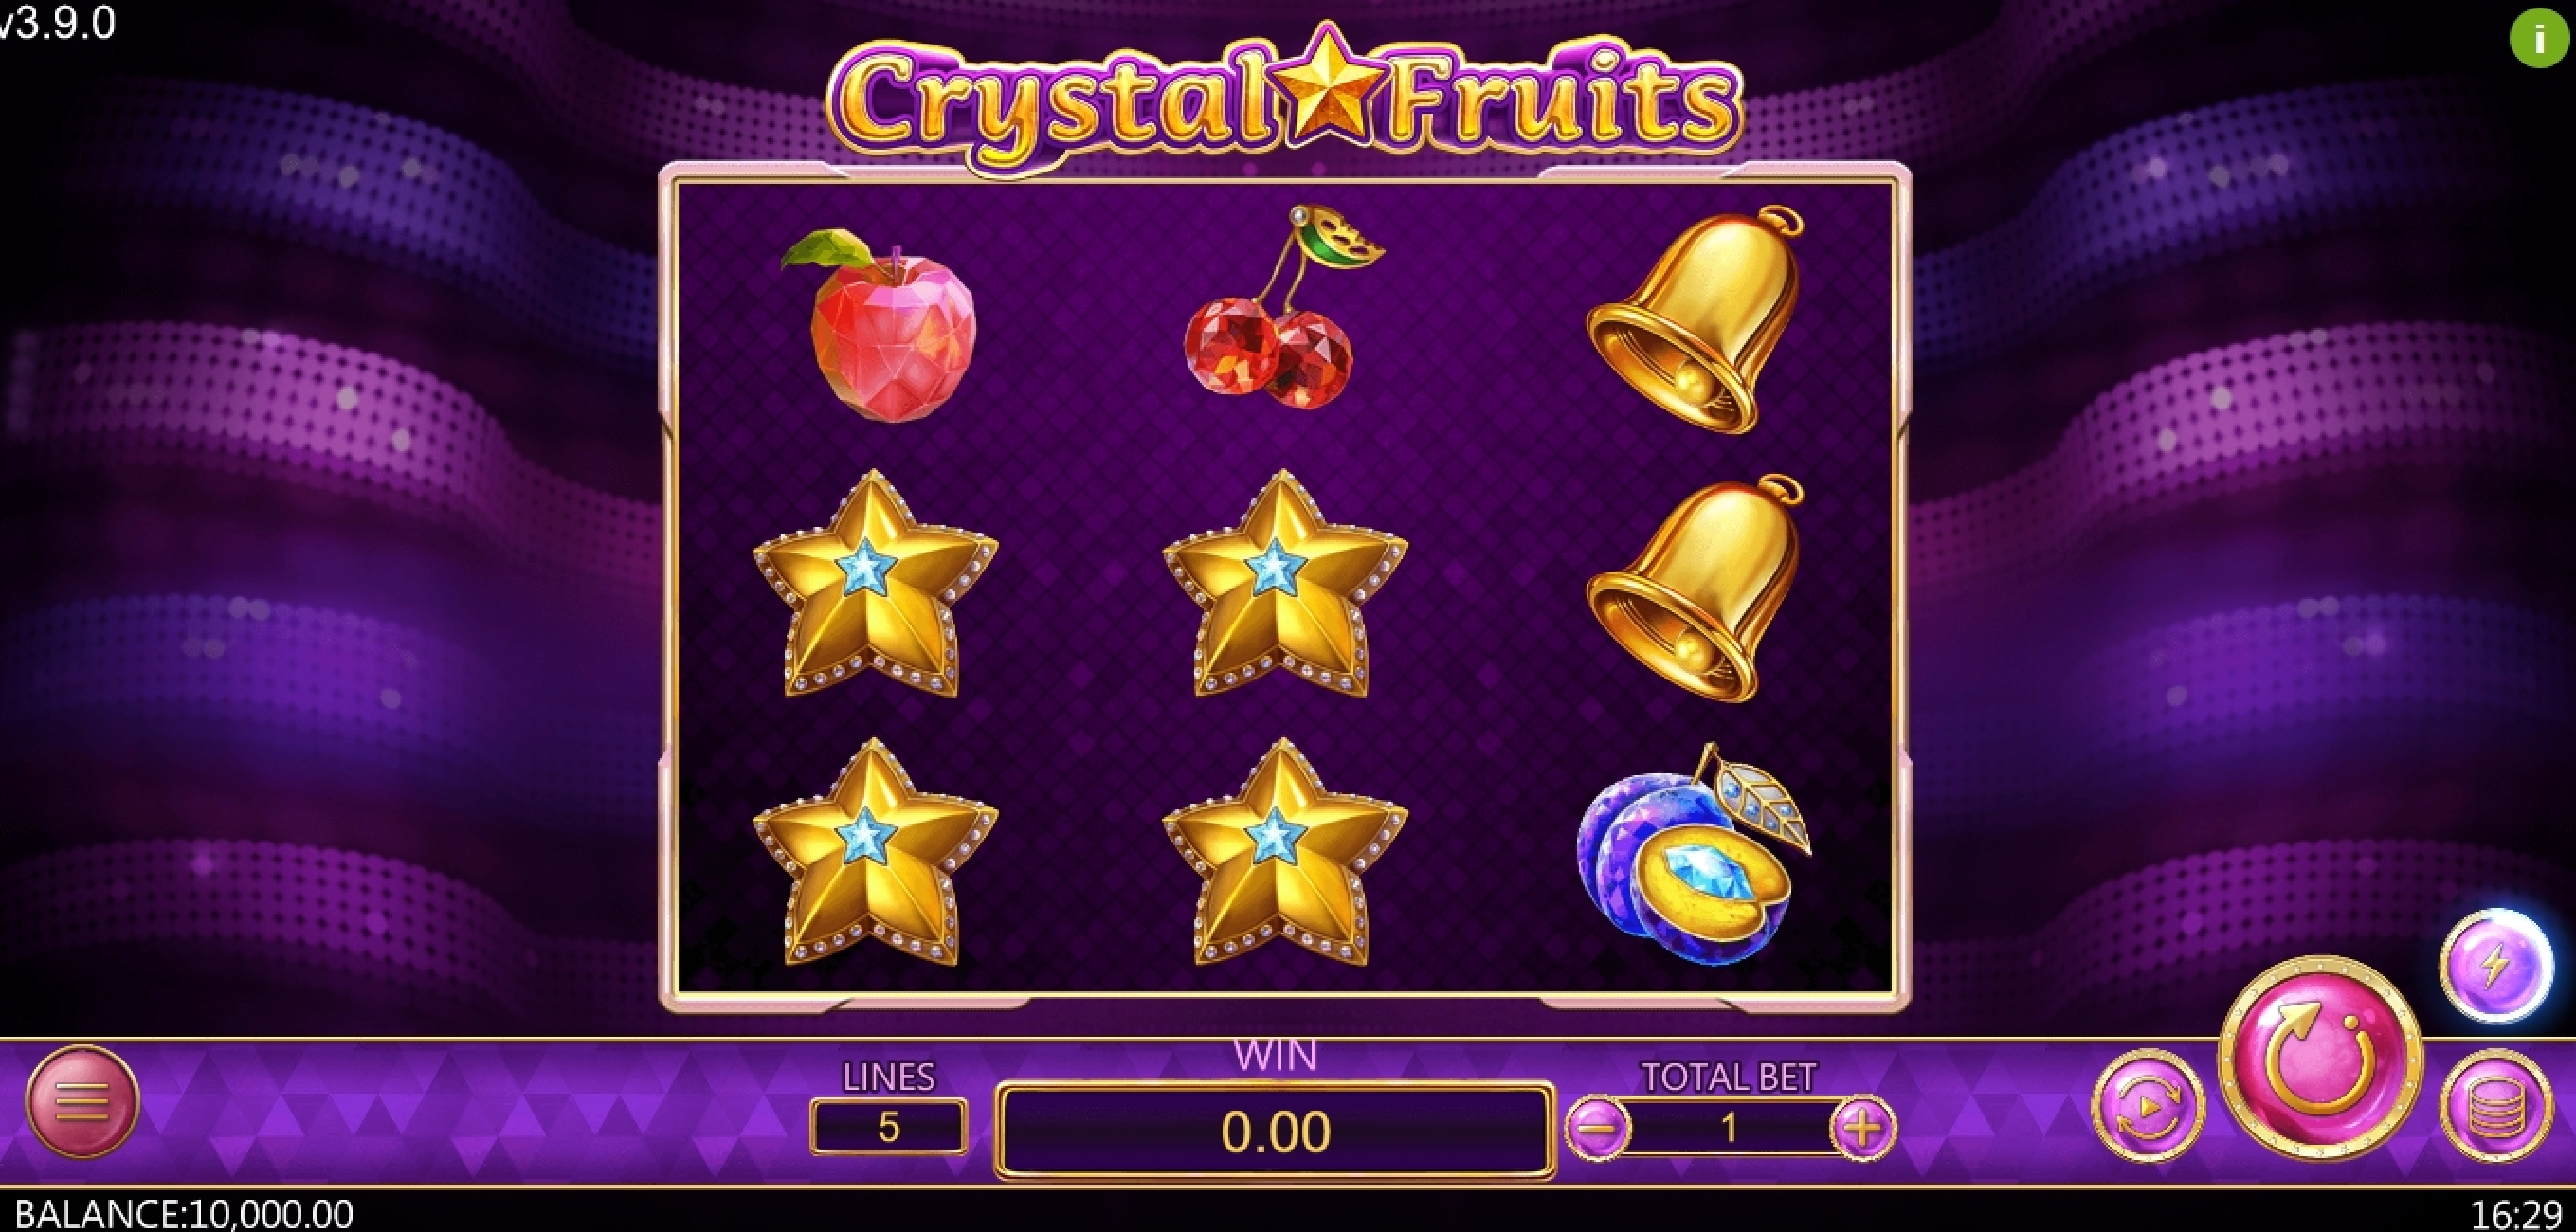 Reels in Crystal Fruits (Dragoon Soft) Slot Game by Dragoon Soft